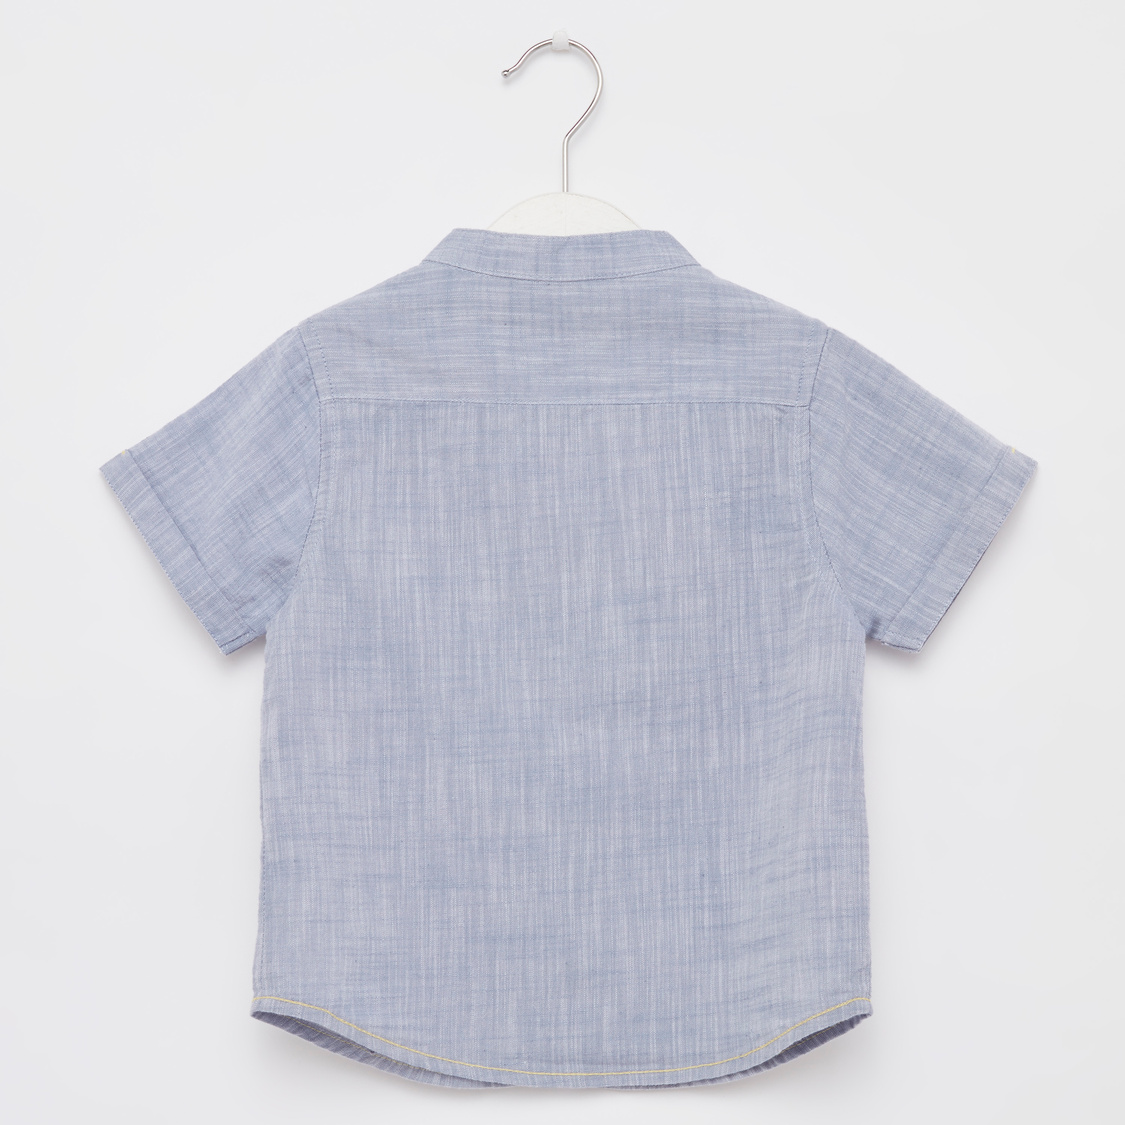 Printed Round Neck T-shirt with Textured Short Sleeves Shirt